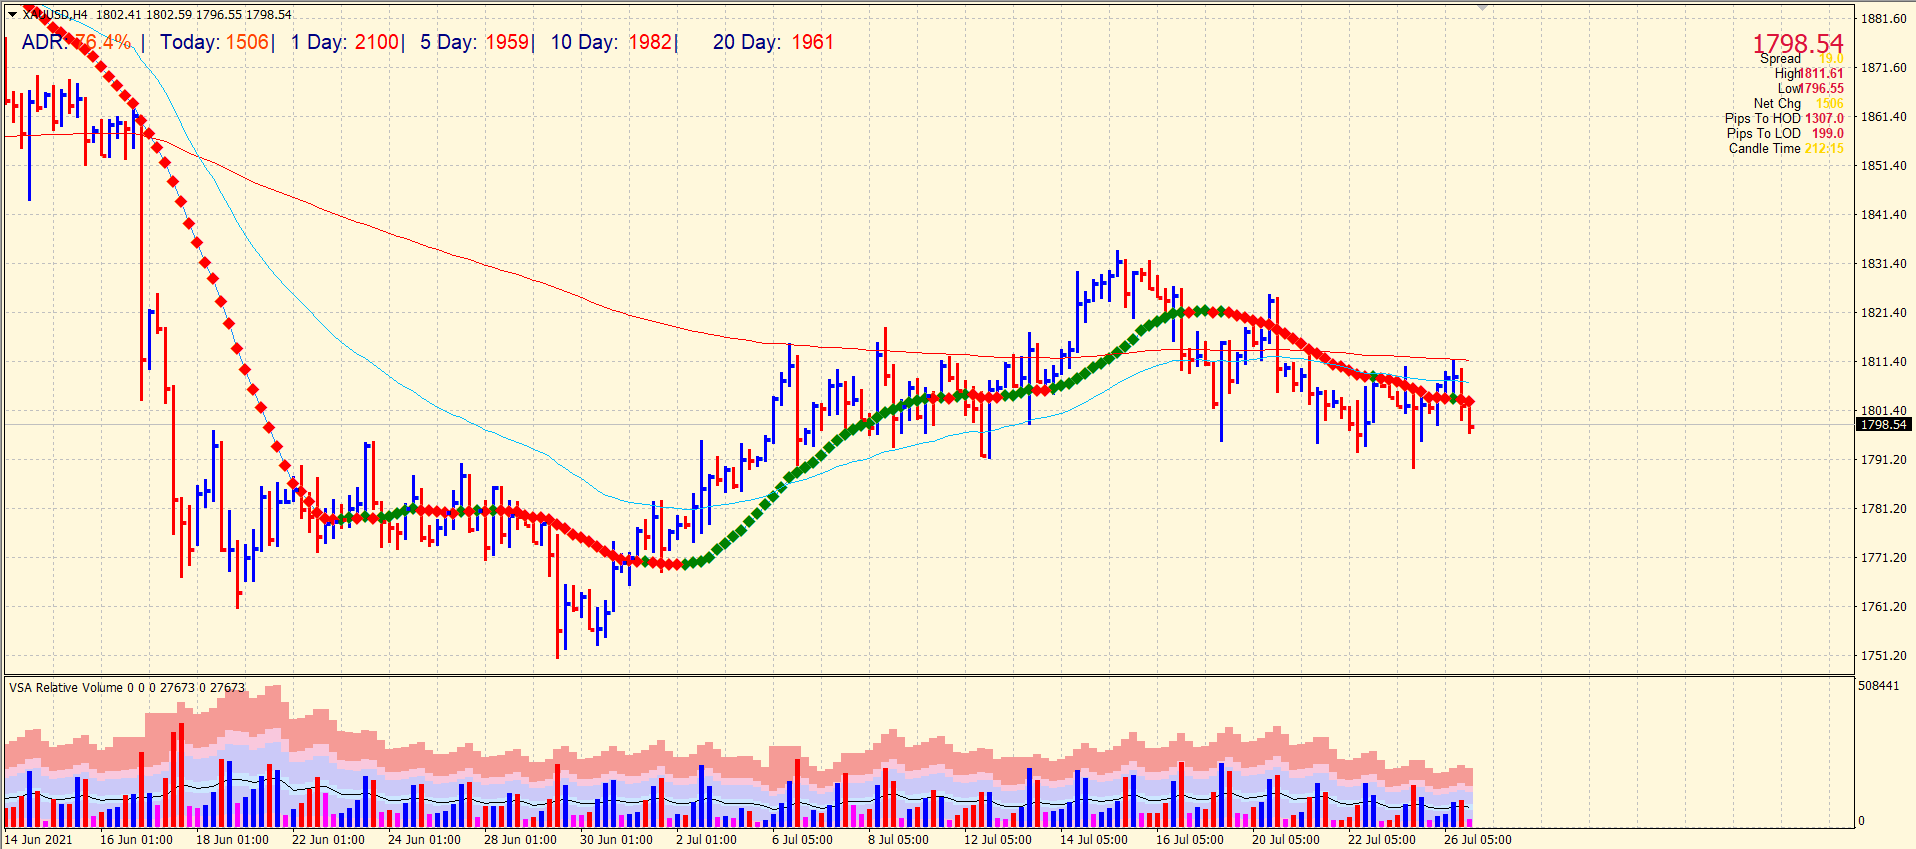 Gold price on 4-hour chart